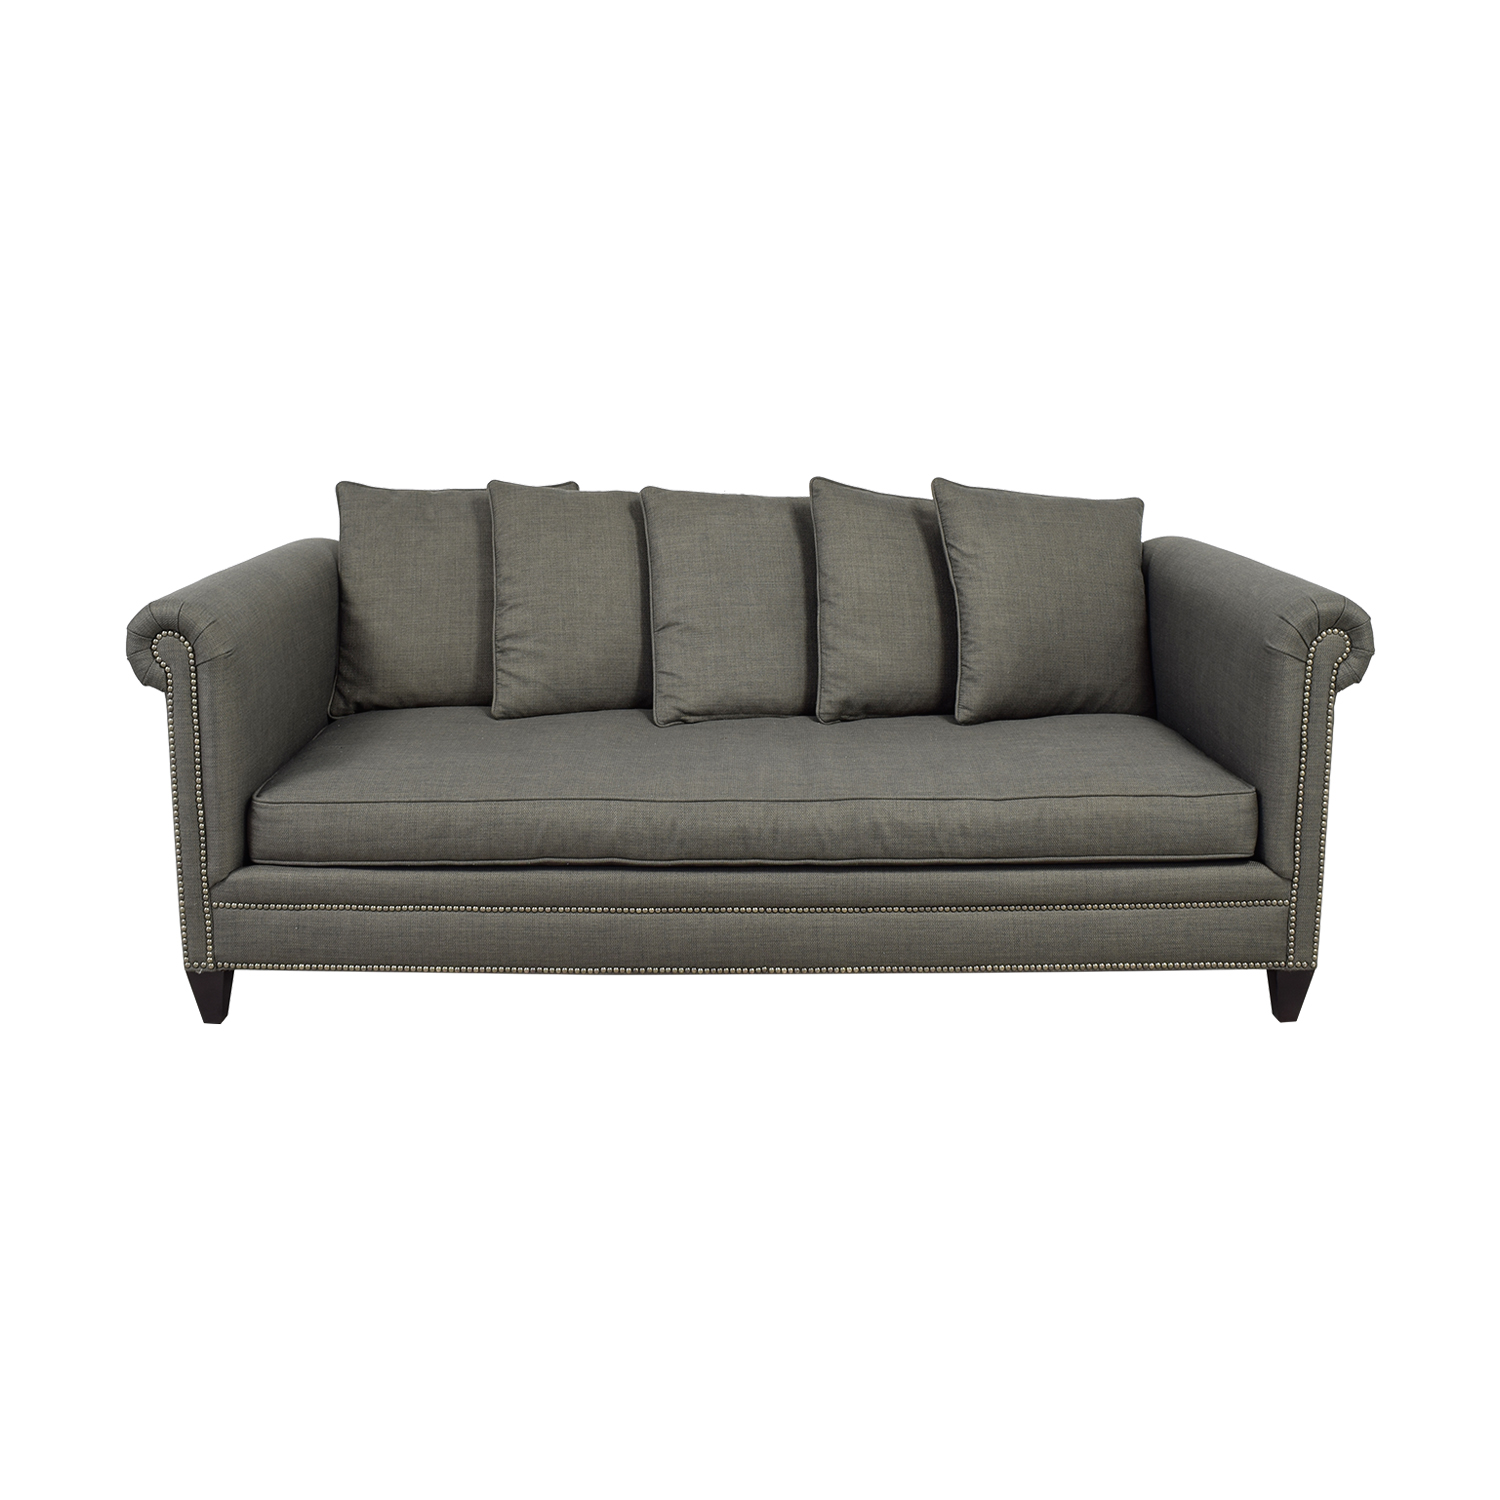 shop Crate & Barrel Durham Sofa Crate & Barrel